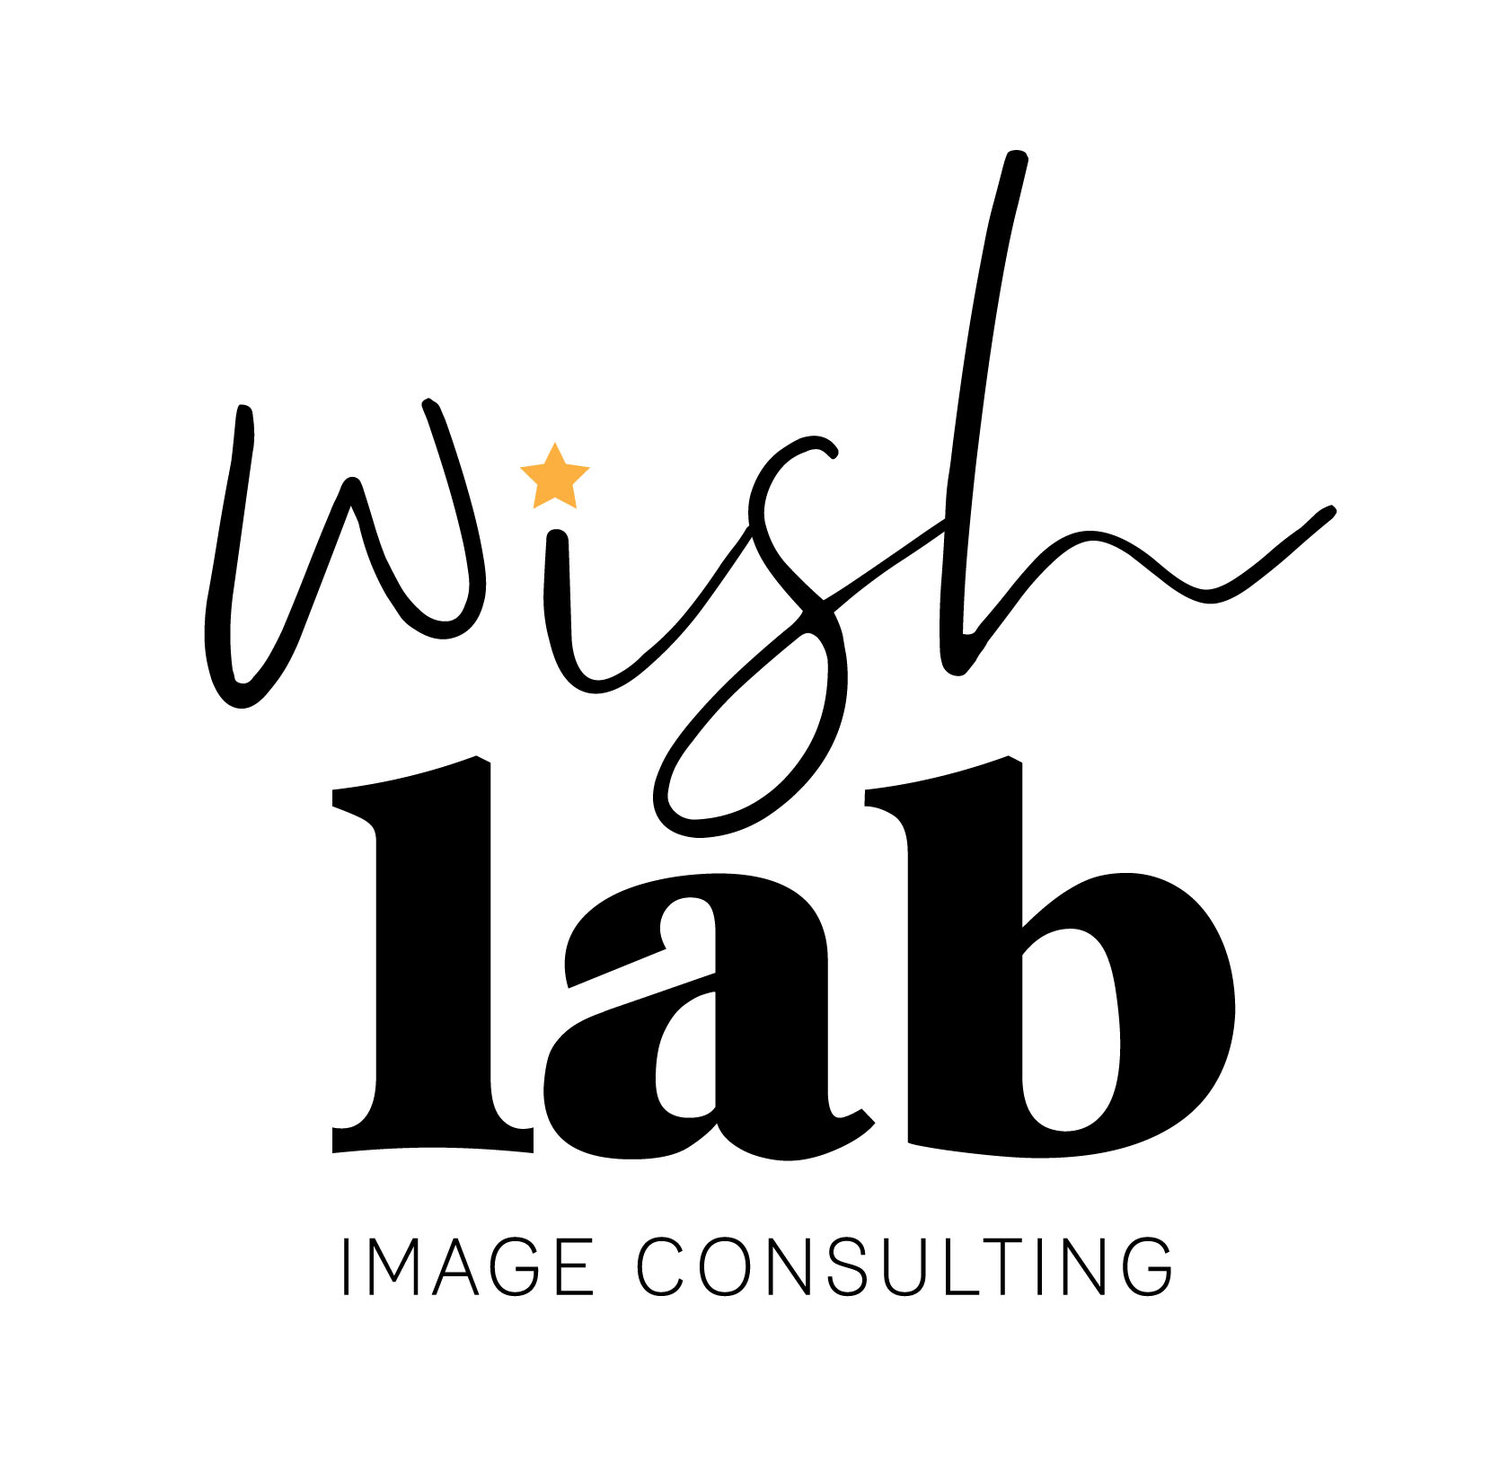 Wish Lab Image Consulting